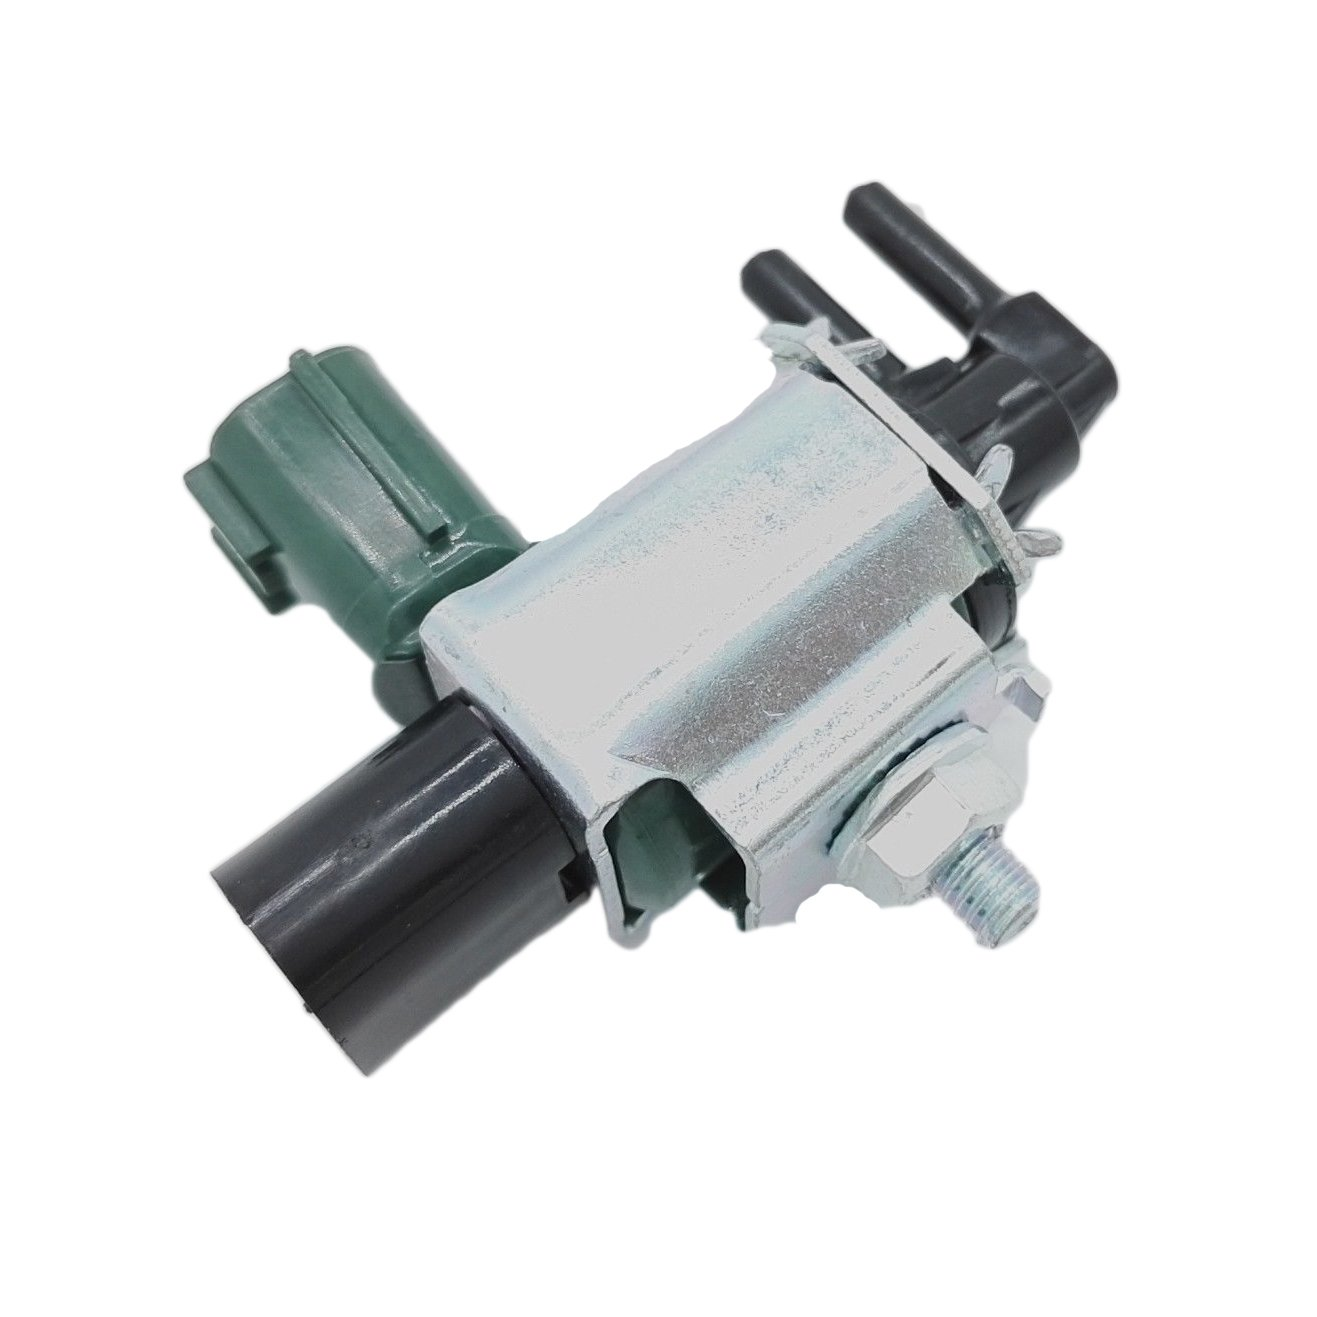 EGR Valve Control Switch Solenoid Valve for Nissan Altima Sentra Xterra Infiniti Yupin Auto Parts Co.; Ltd. K5T46581